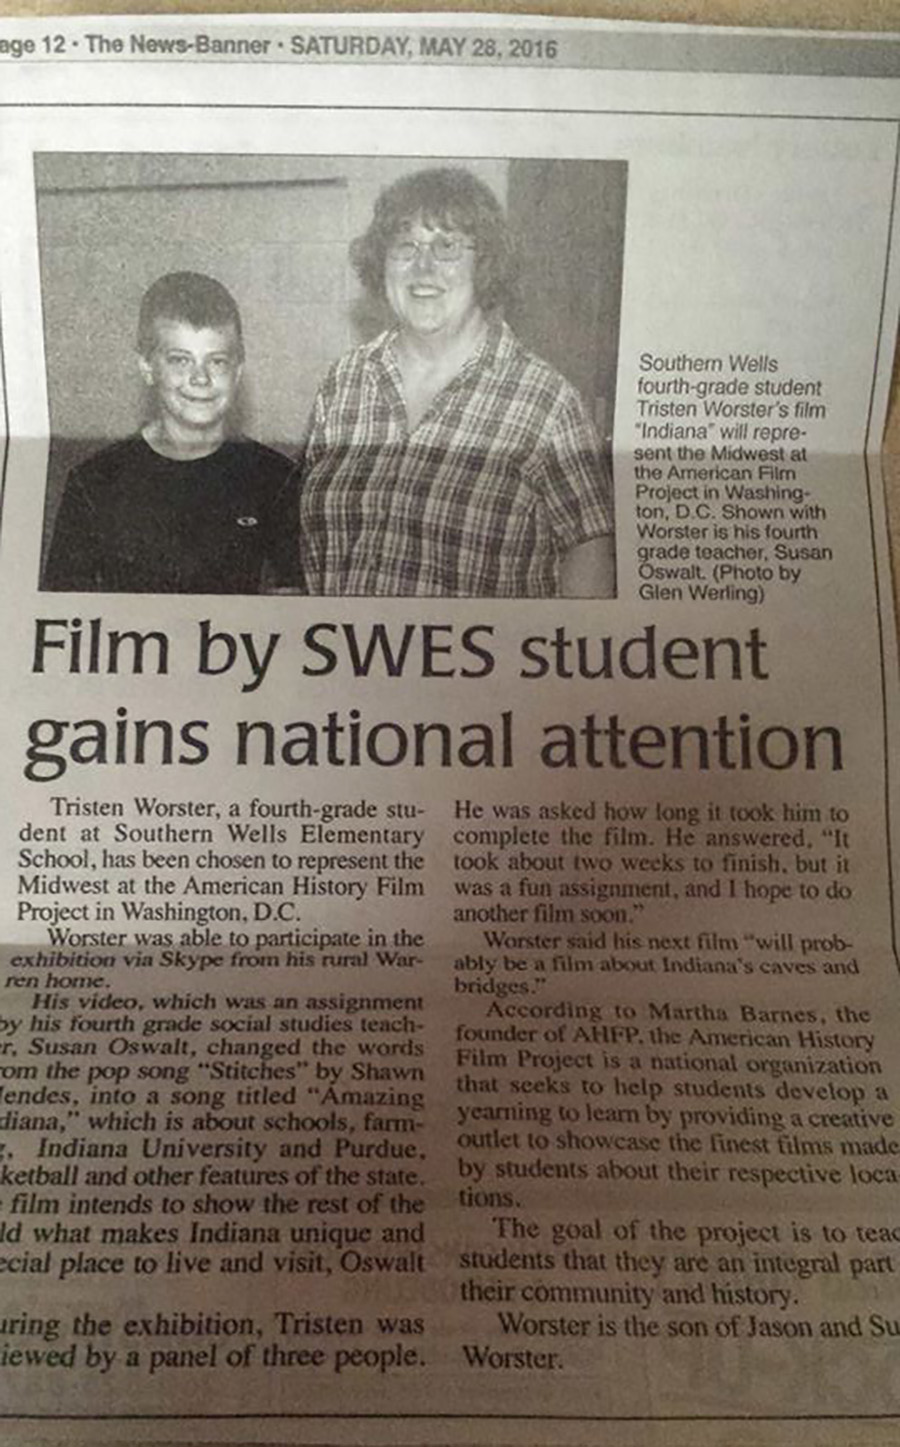 Film by SWES Student Gains National Attention